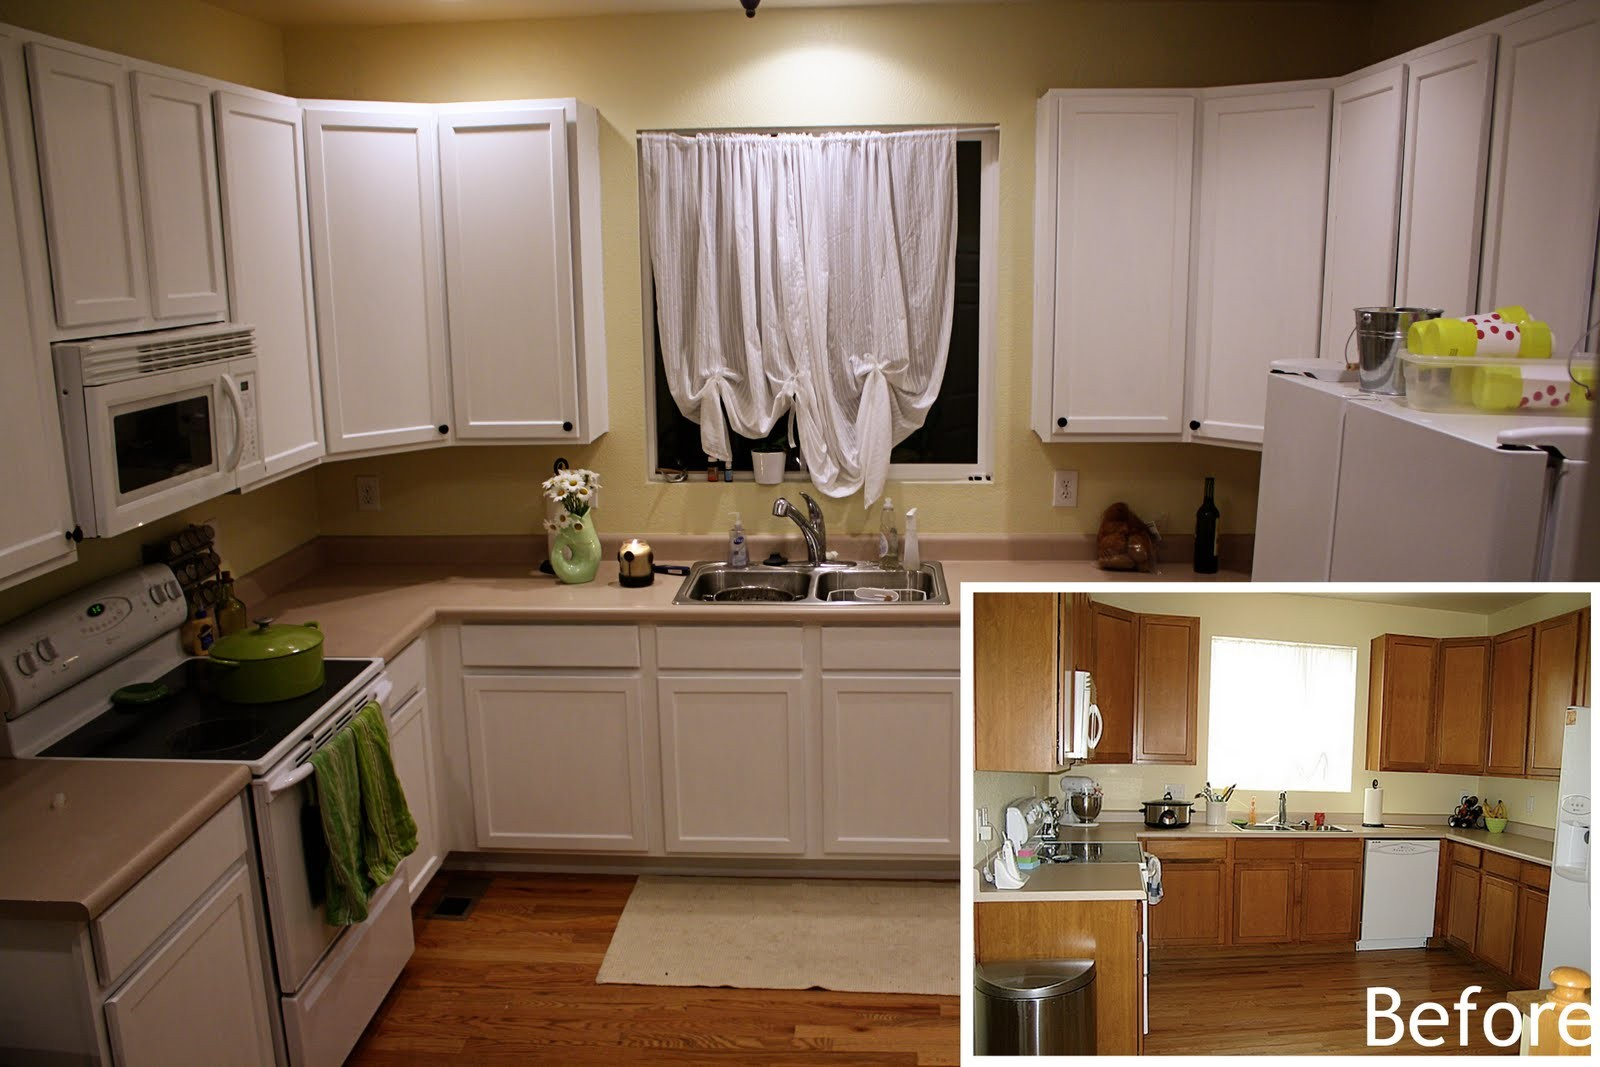 Before and after kitchen remodels on a budget casa elan for Kitchen remodels on a budget